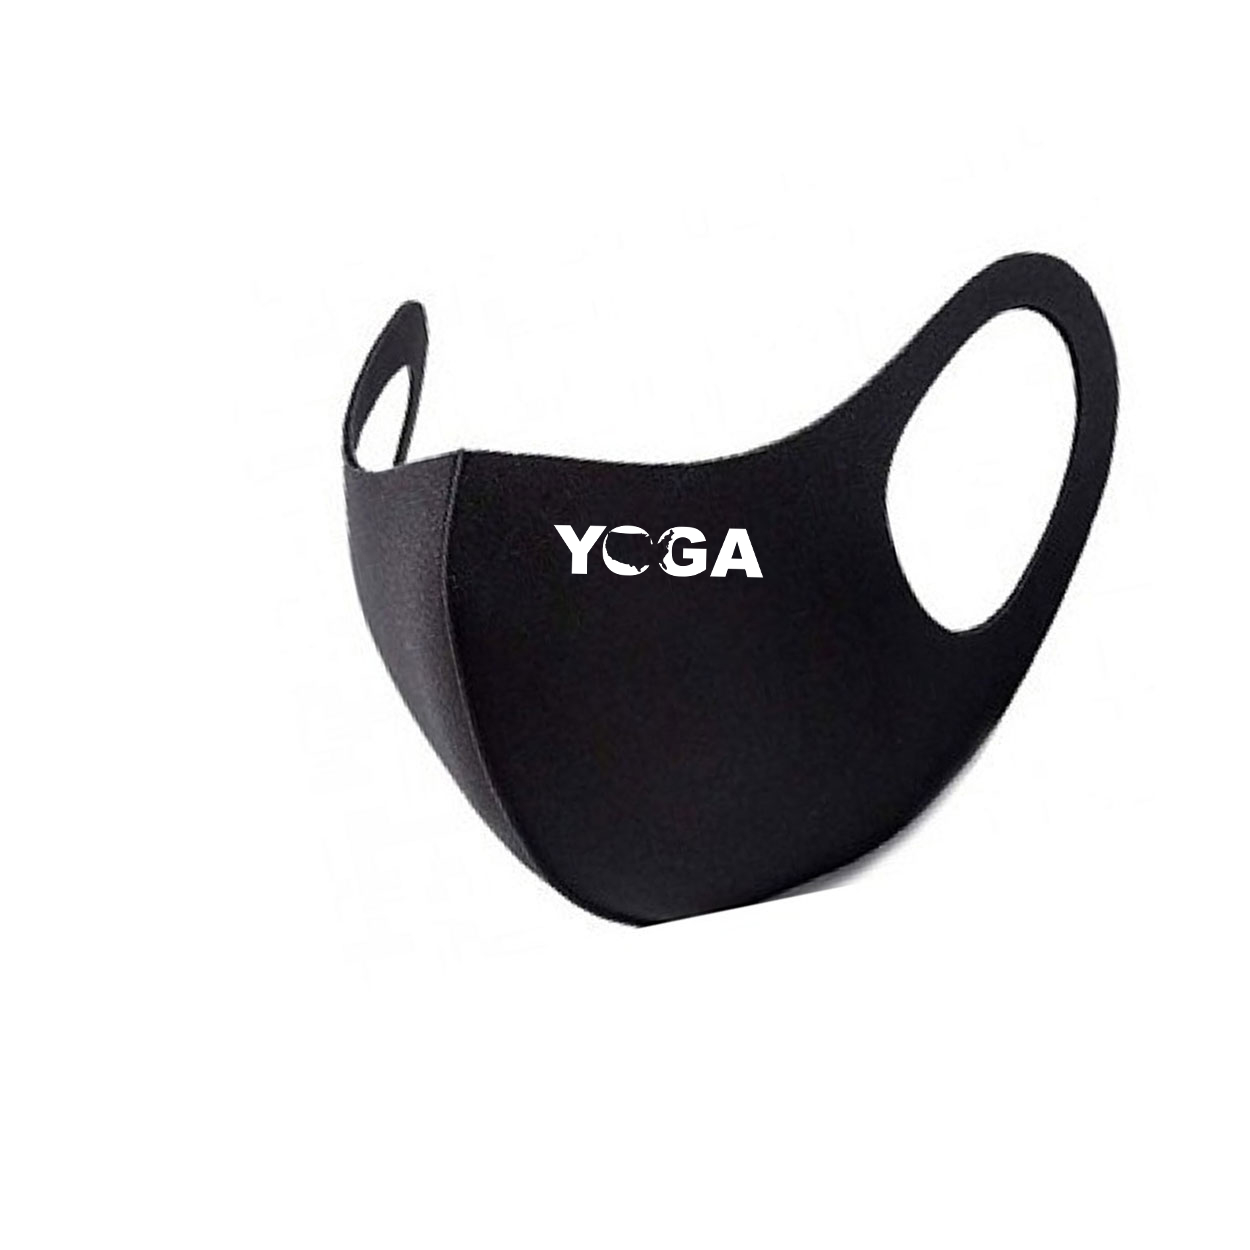 Yoga United States Night Out Fitted Washable Face Mask Black (White Logo)